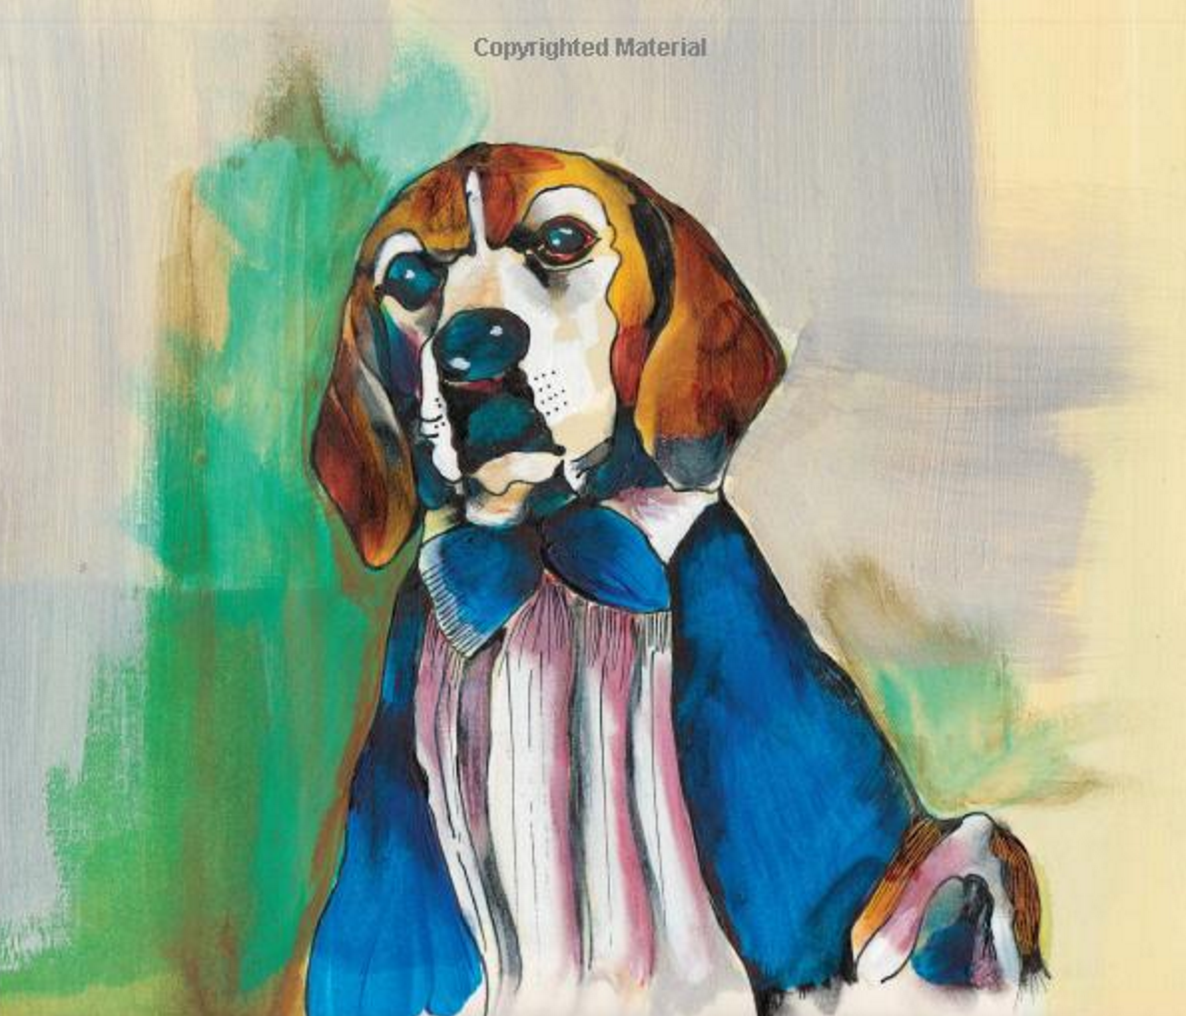 Beagle,1000 Dog Portraits: From the People Who Love Them. ""